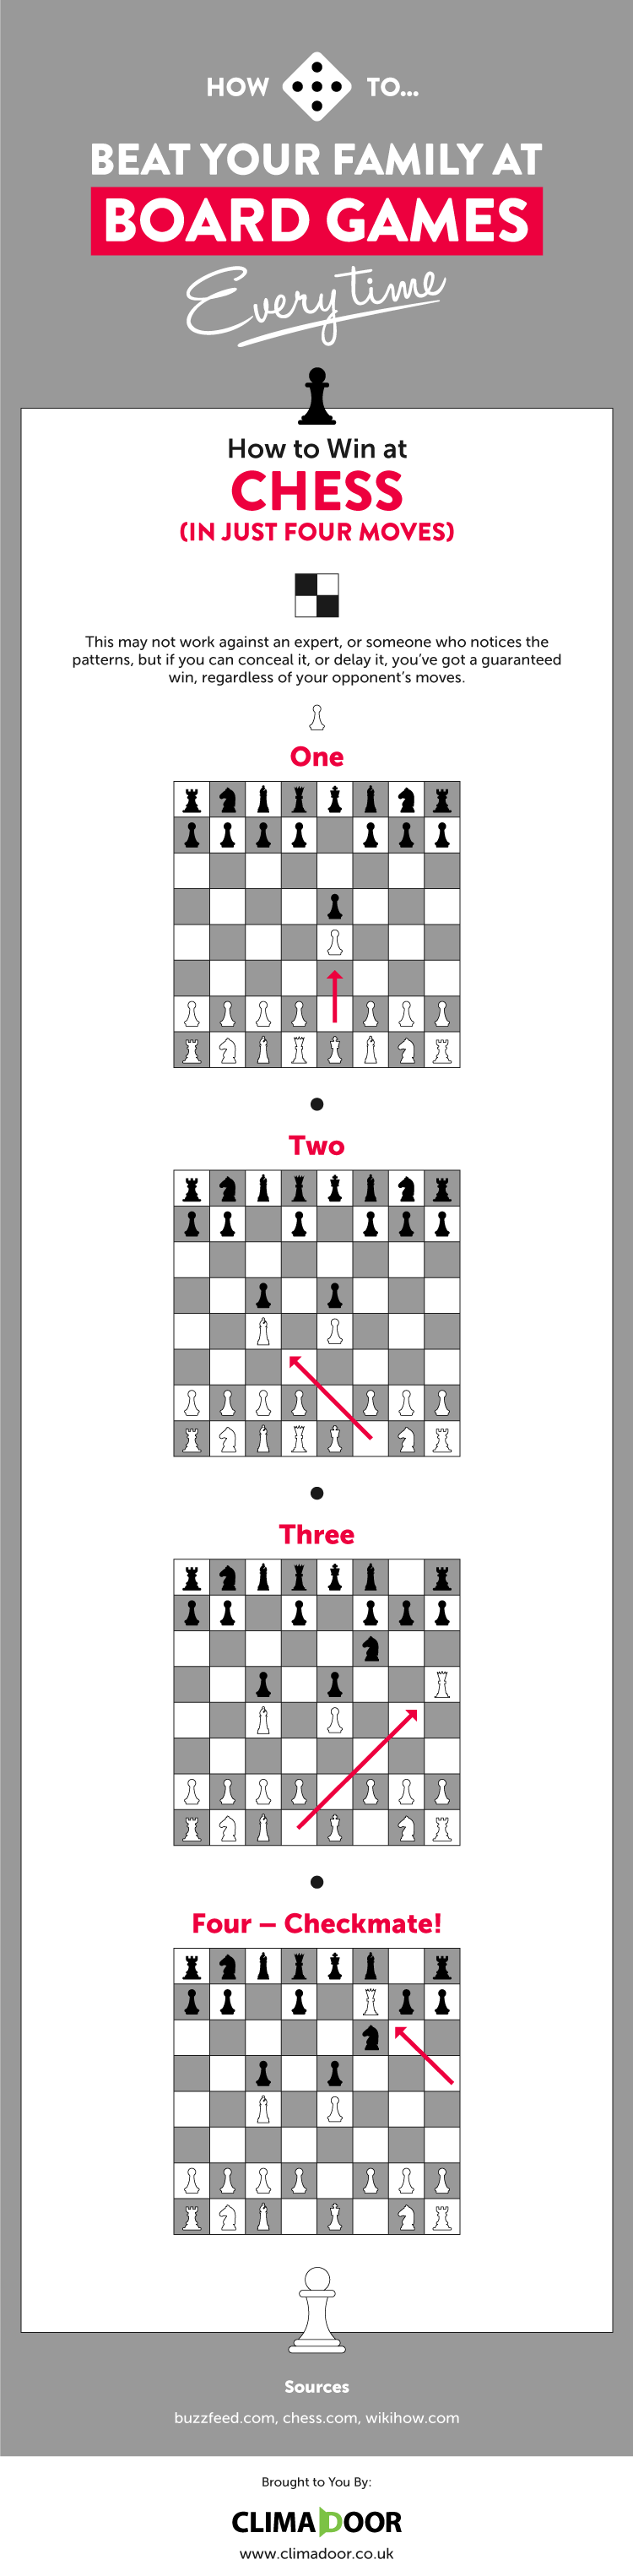 how to win at chess in only four moves